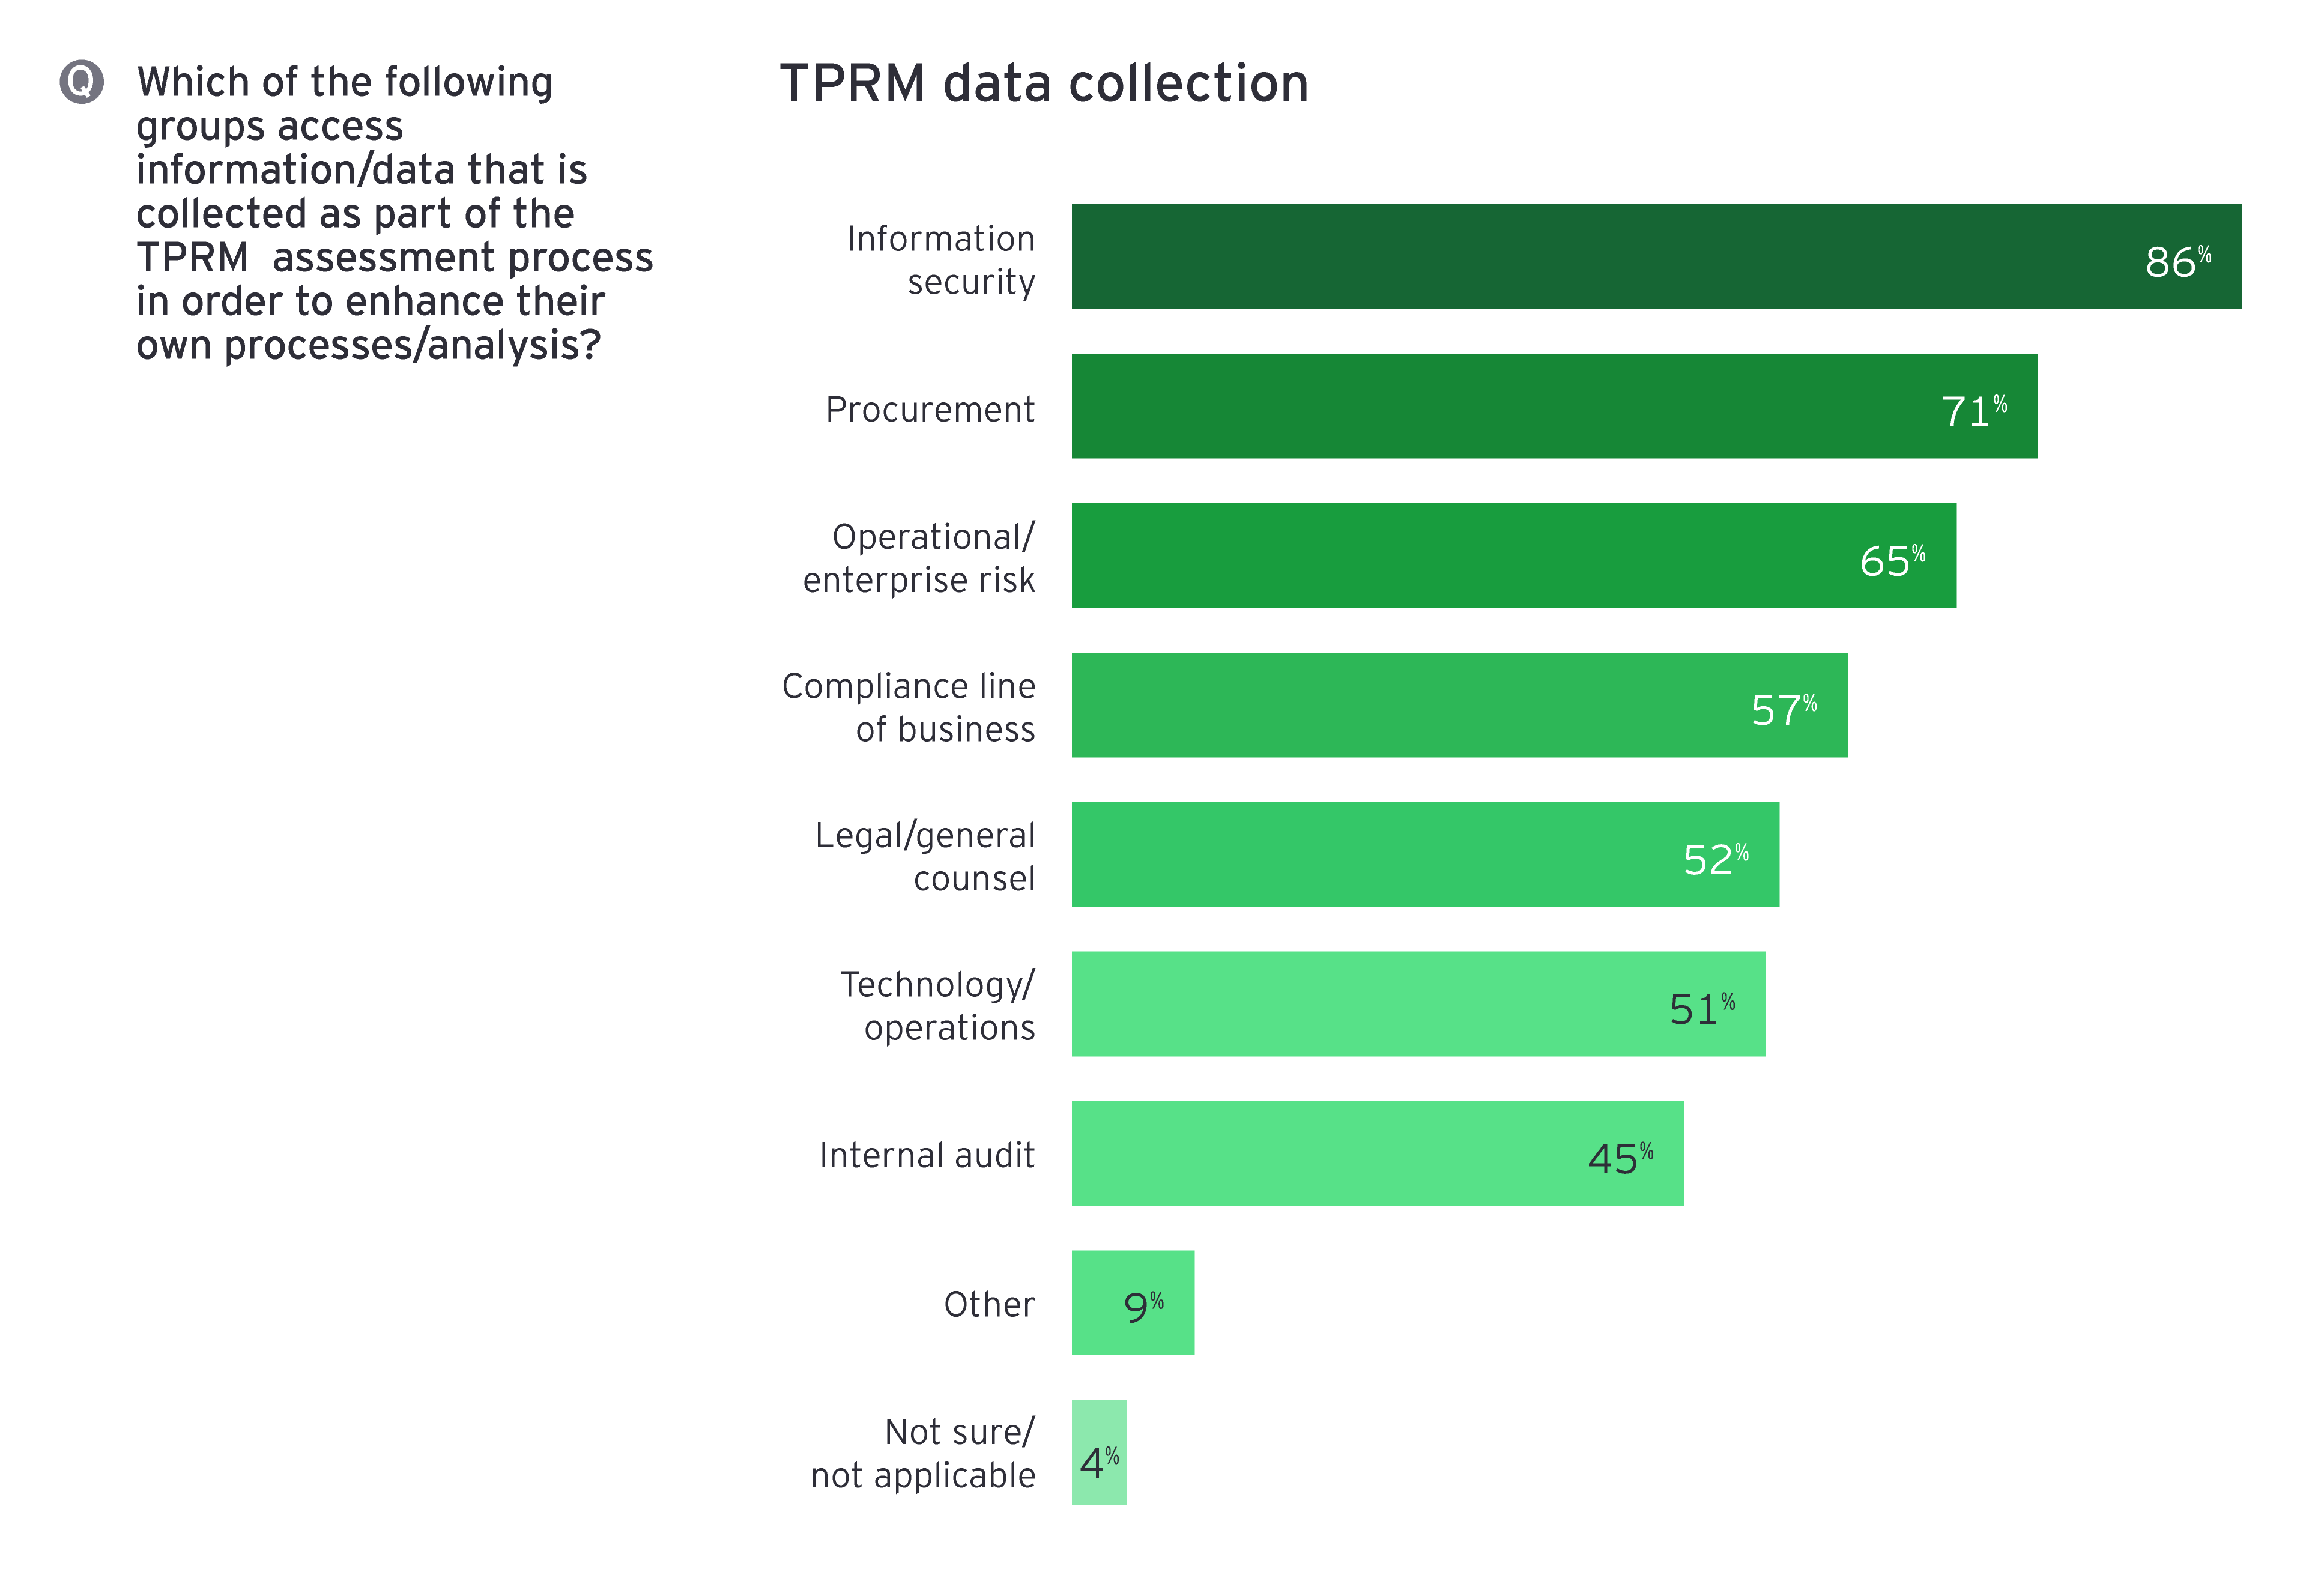 TPRM data collection